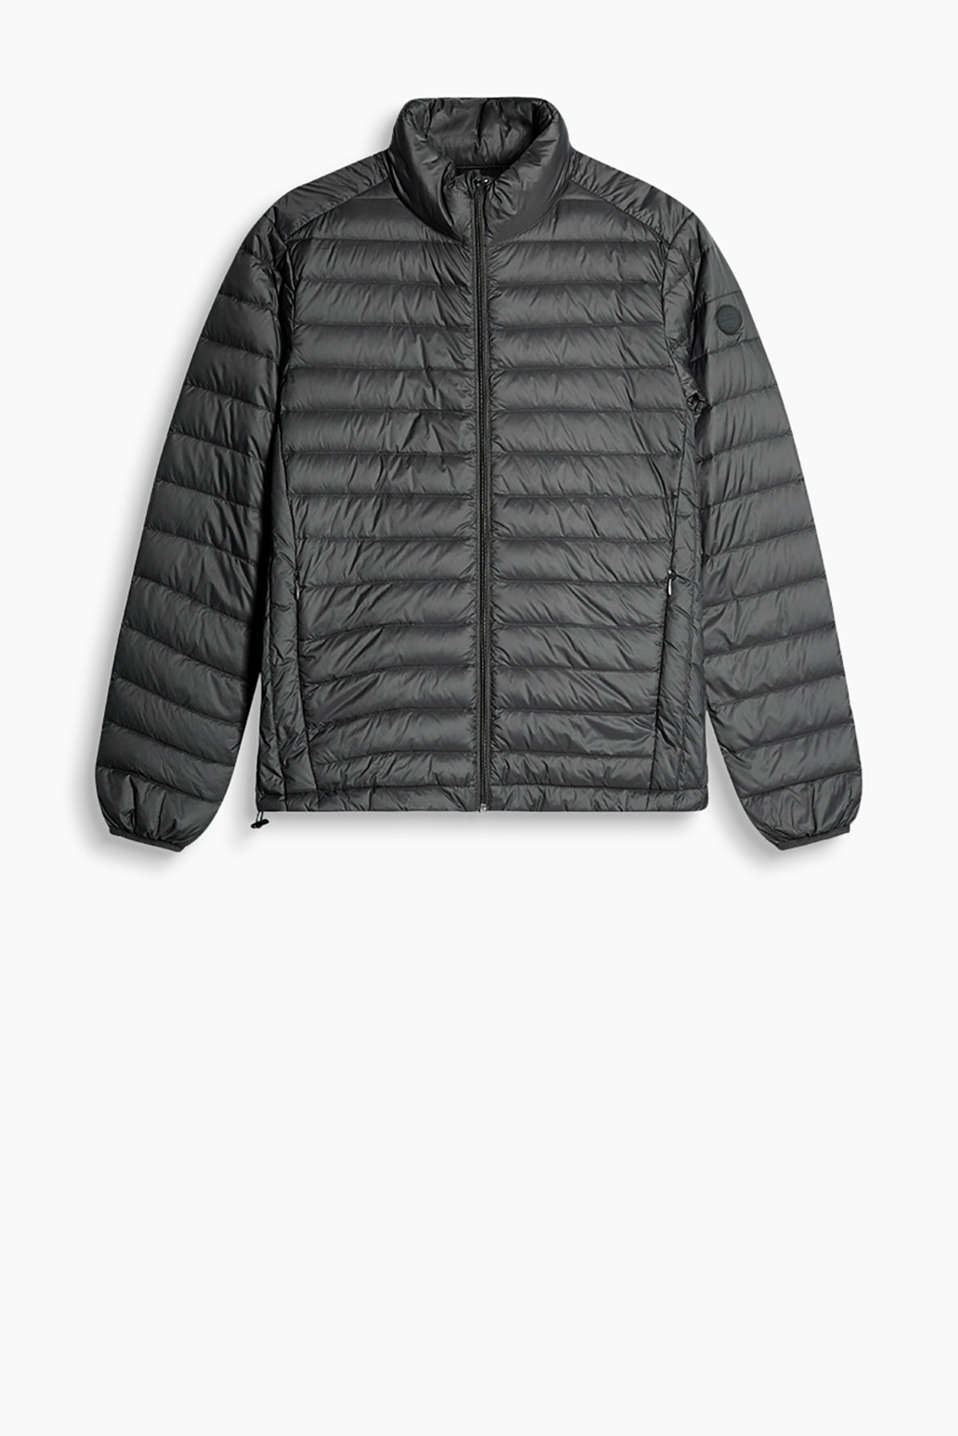 Quilted jacket with contrast lining, stand-up collar + RDS certified down filling, fold up and store in the accompanying bag